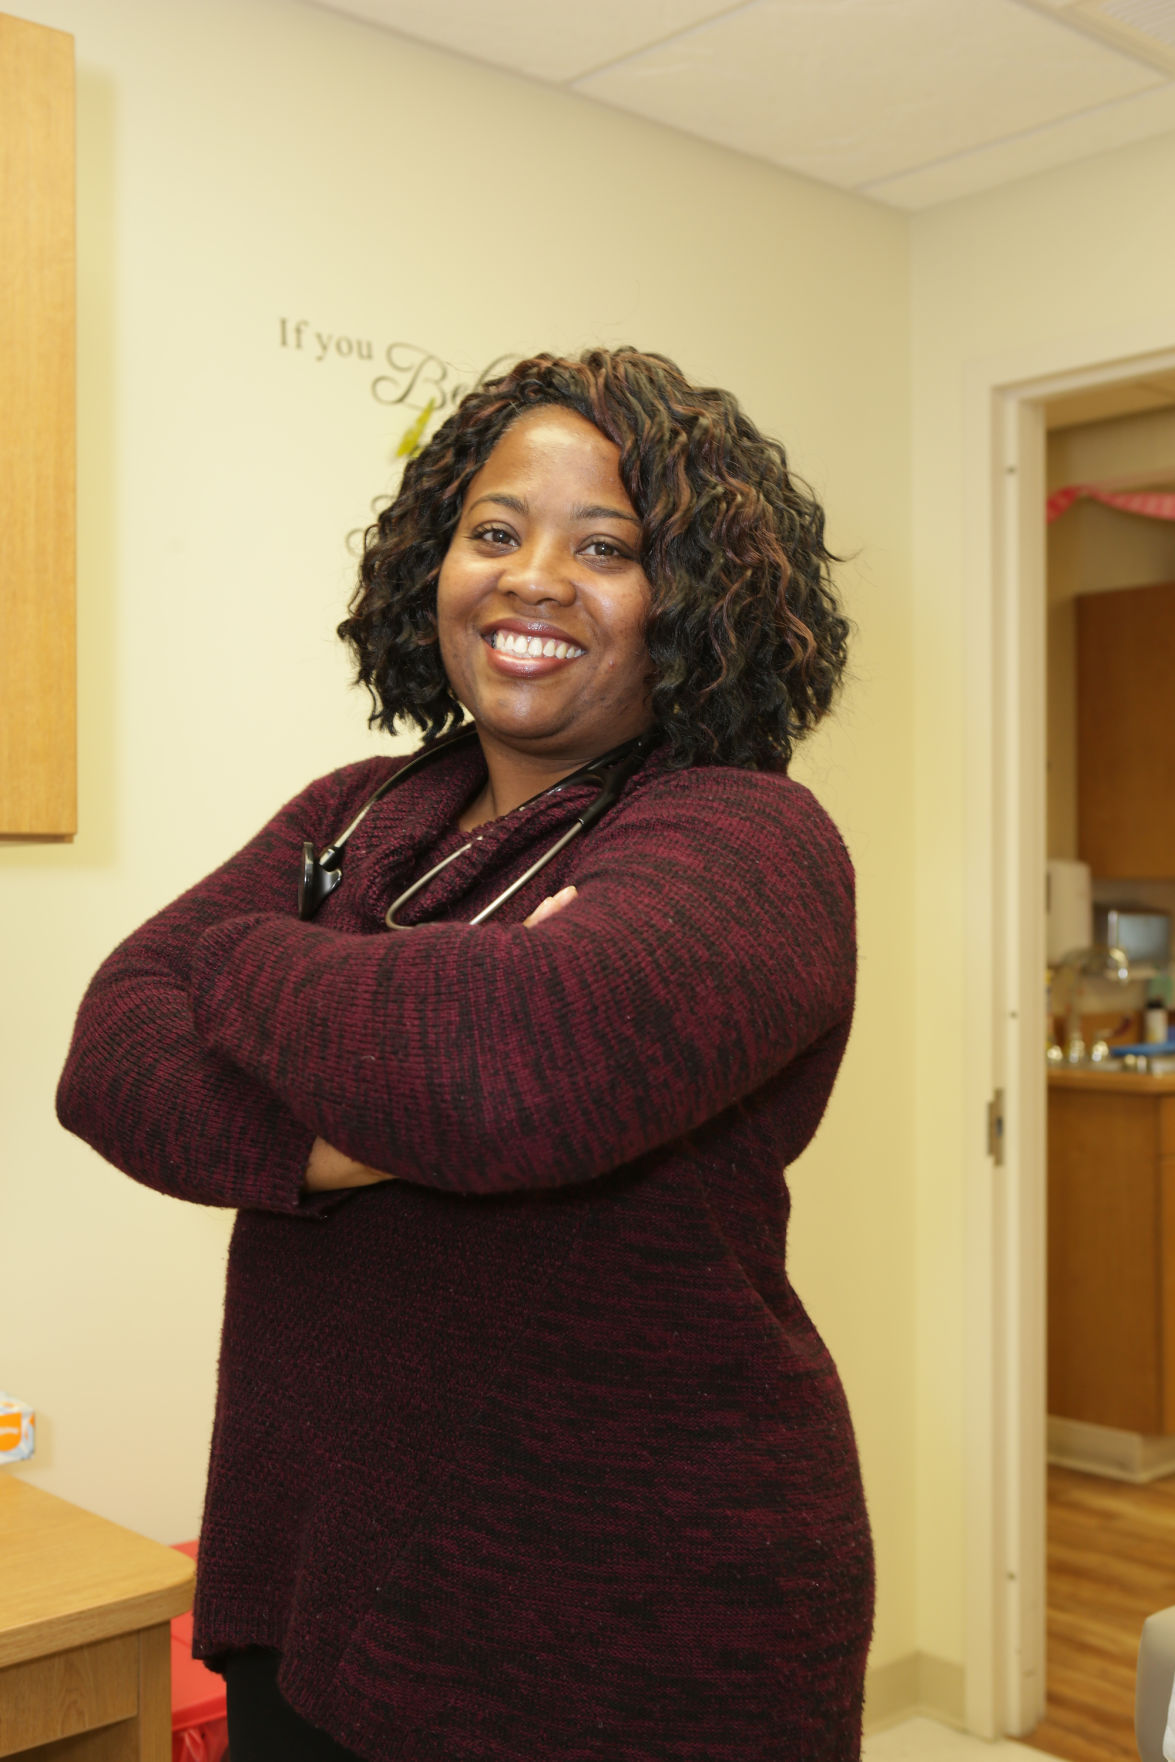 Region counselors, clergy offer tips on cutting the unrealistic expectations to enjoy the holidays